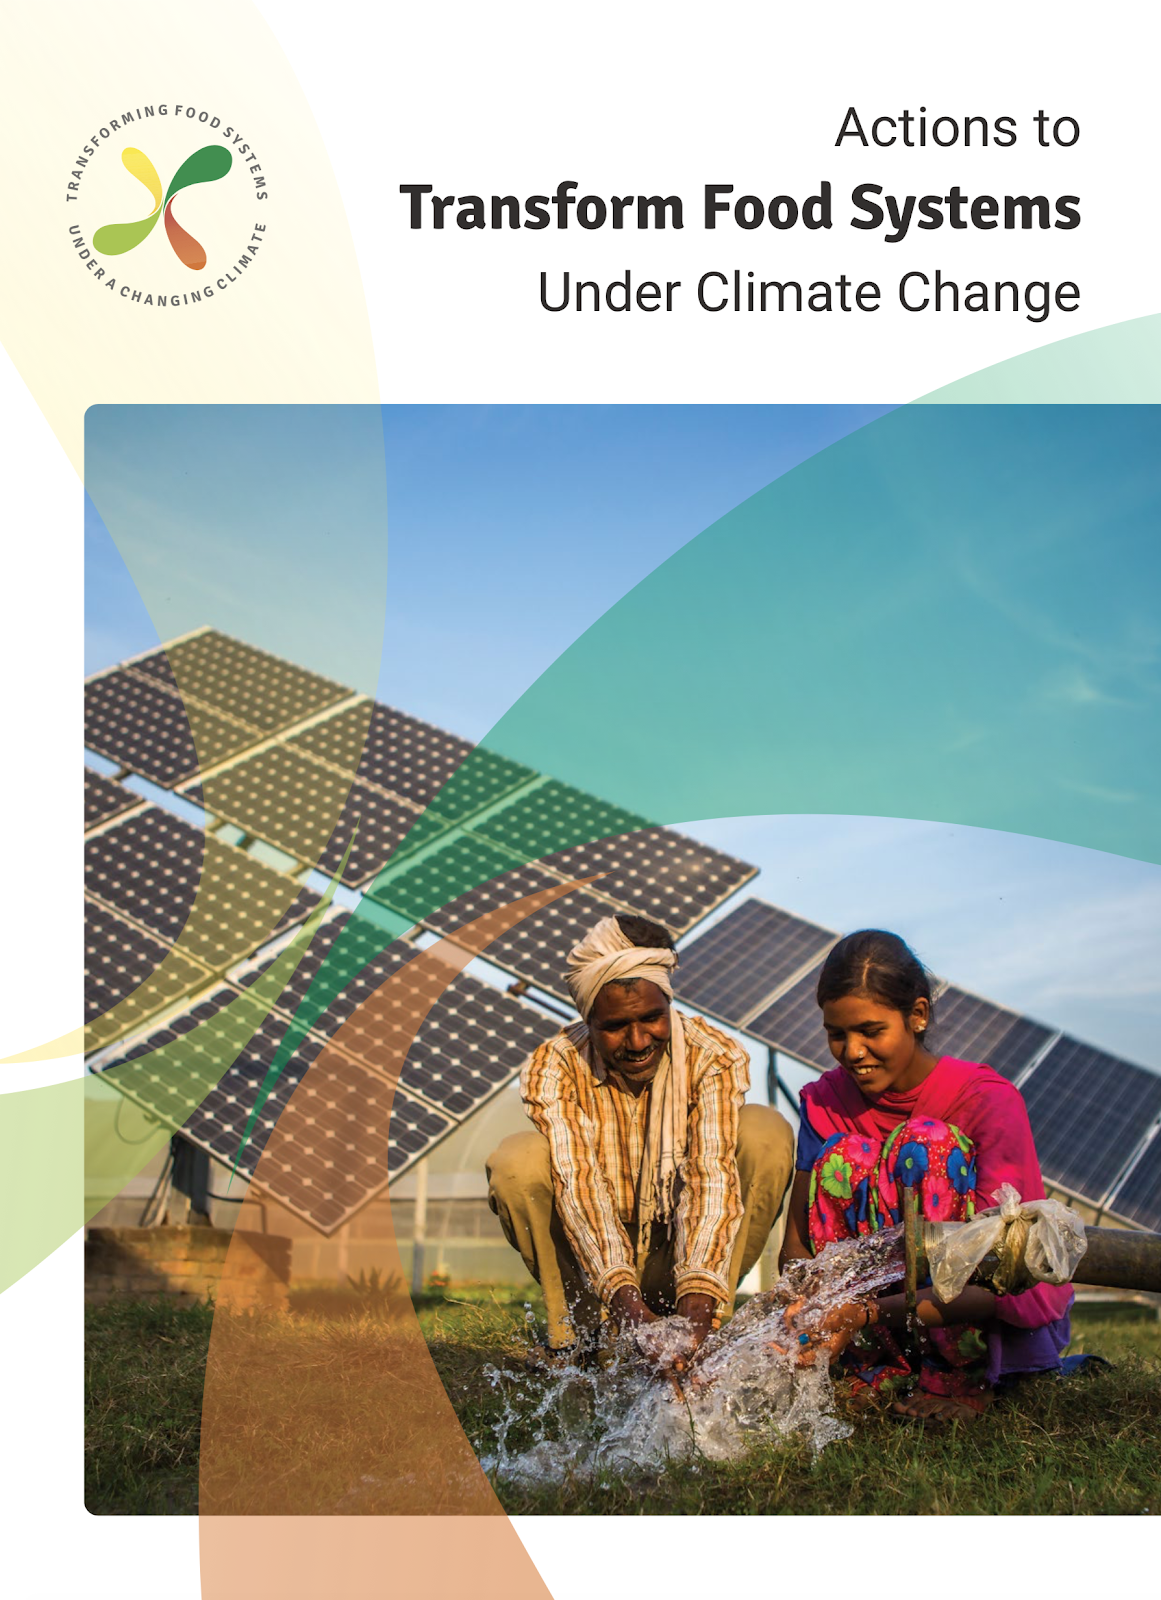 """Report cover design for """"Actions to Transform Food Systems Under Climate Change"""""""